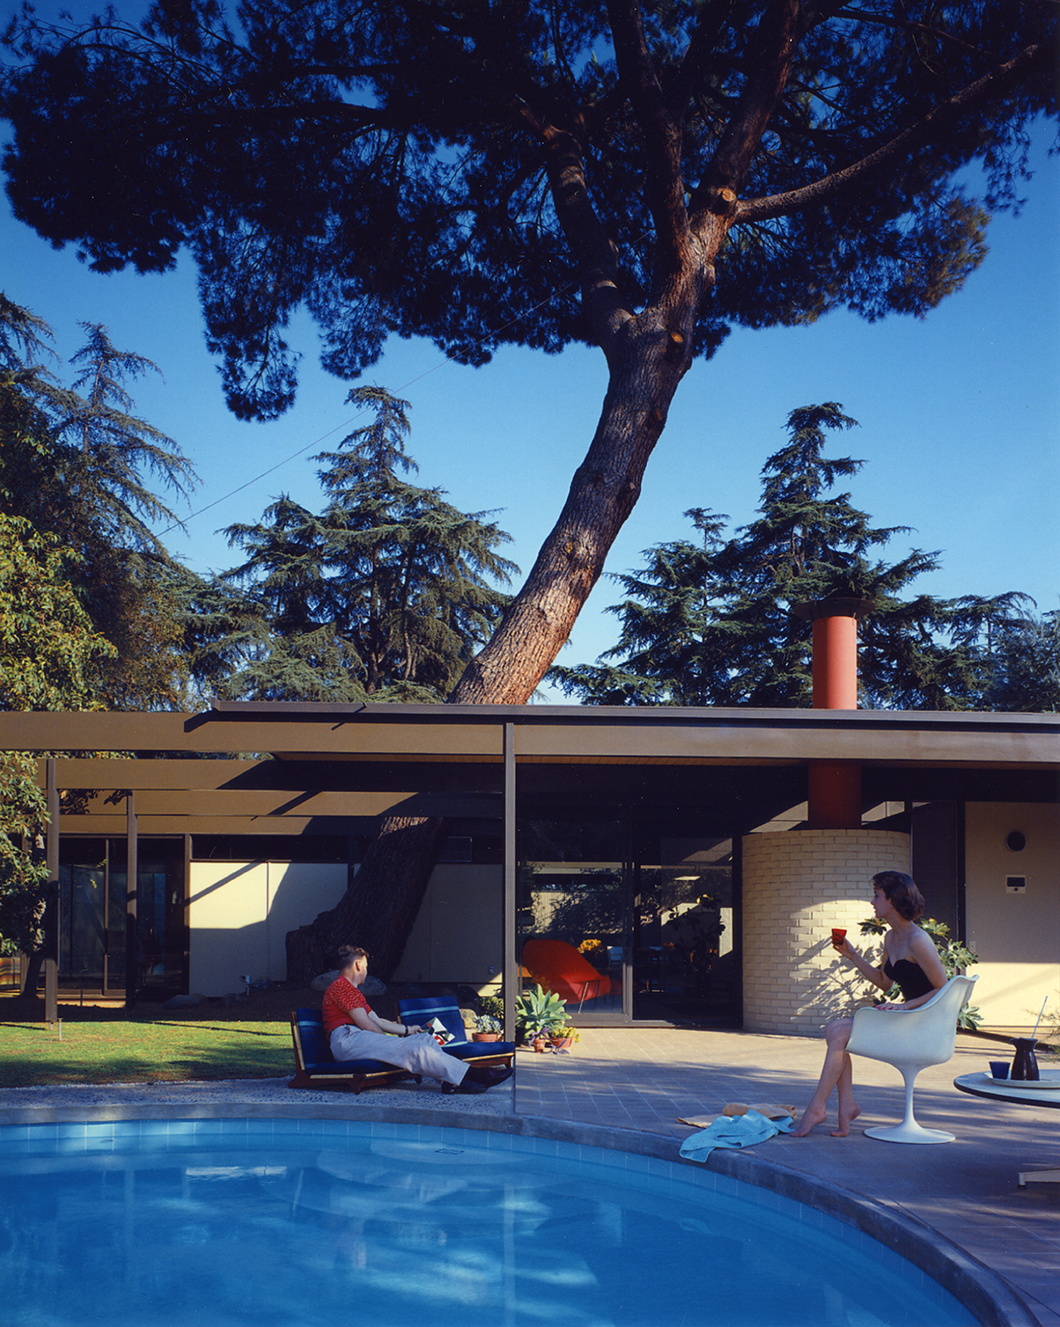 Case Study House #20 (Bass House) by Julius Shulman